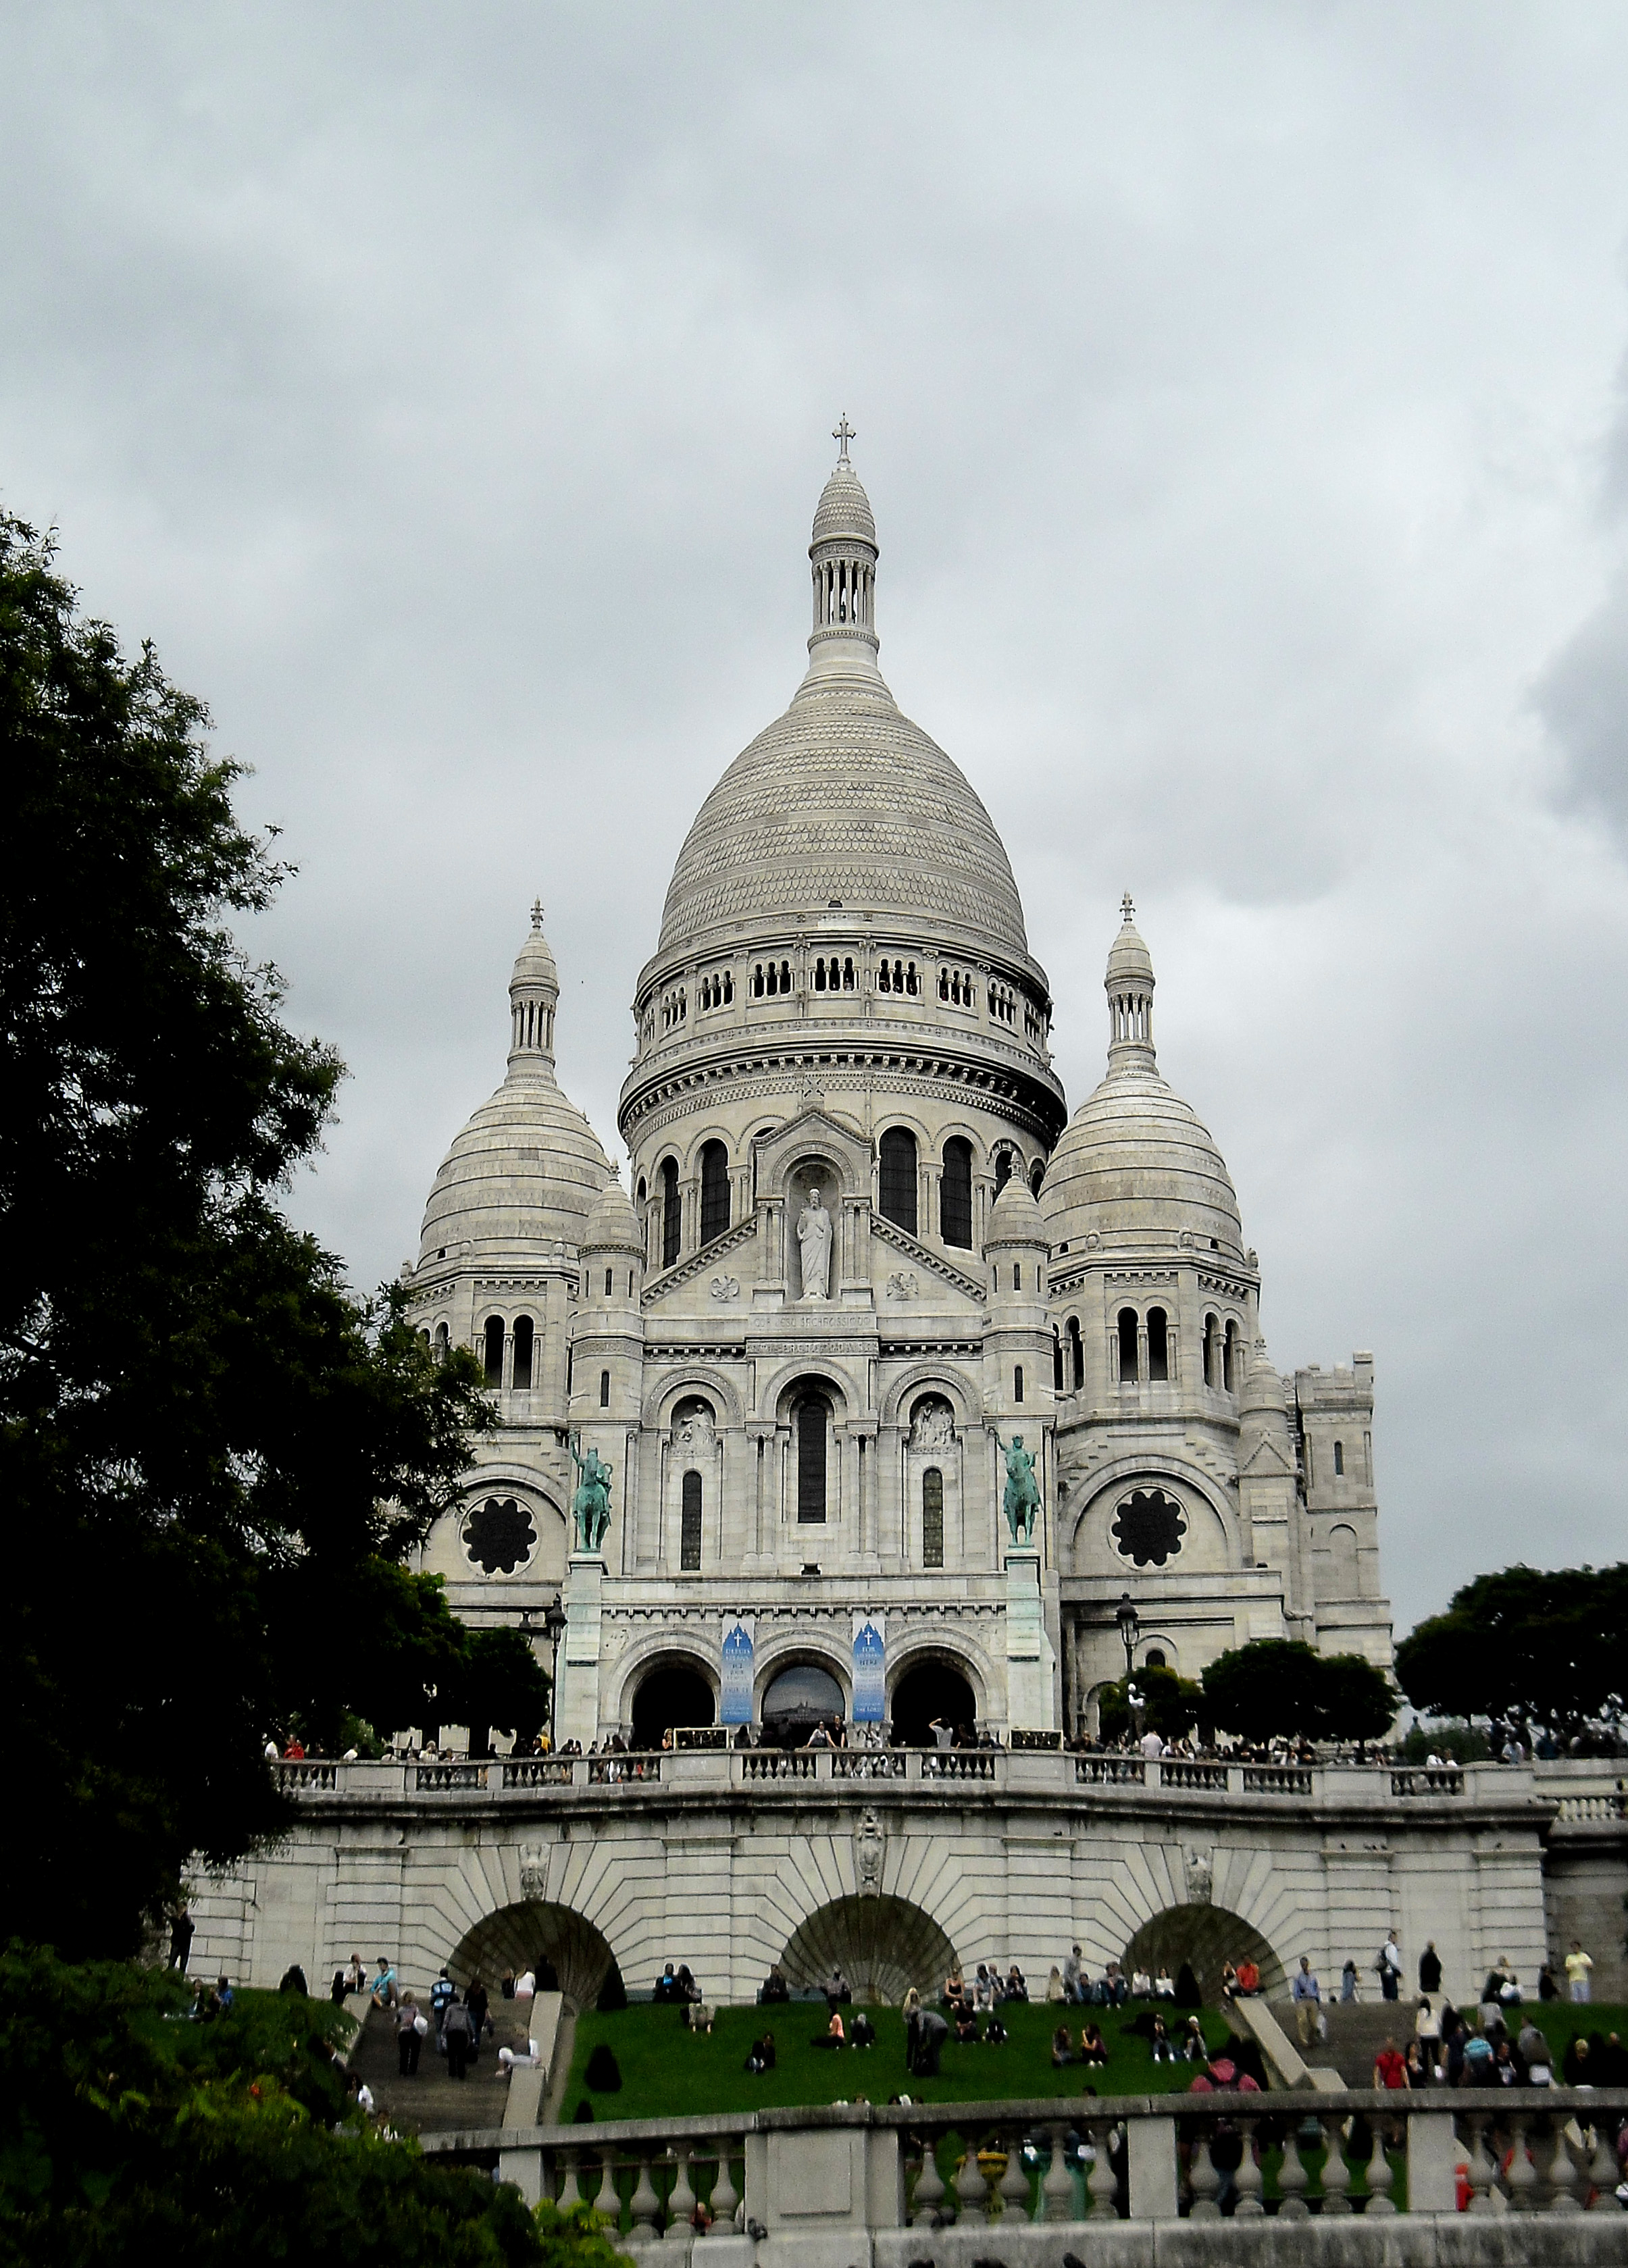 Sacre coeur cathedral in paris - france photo